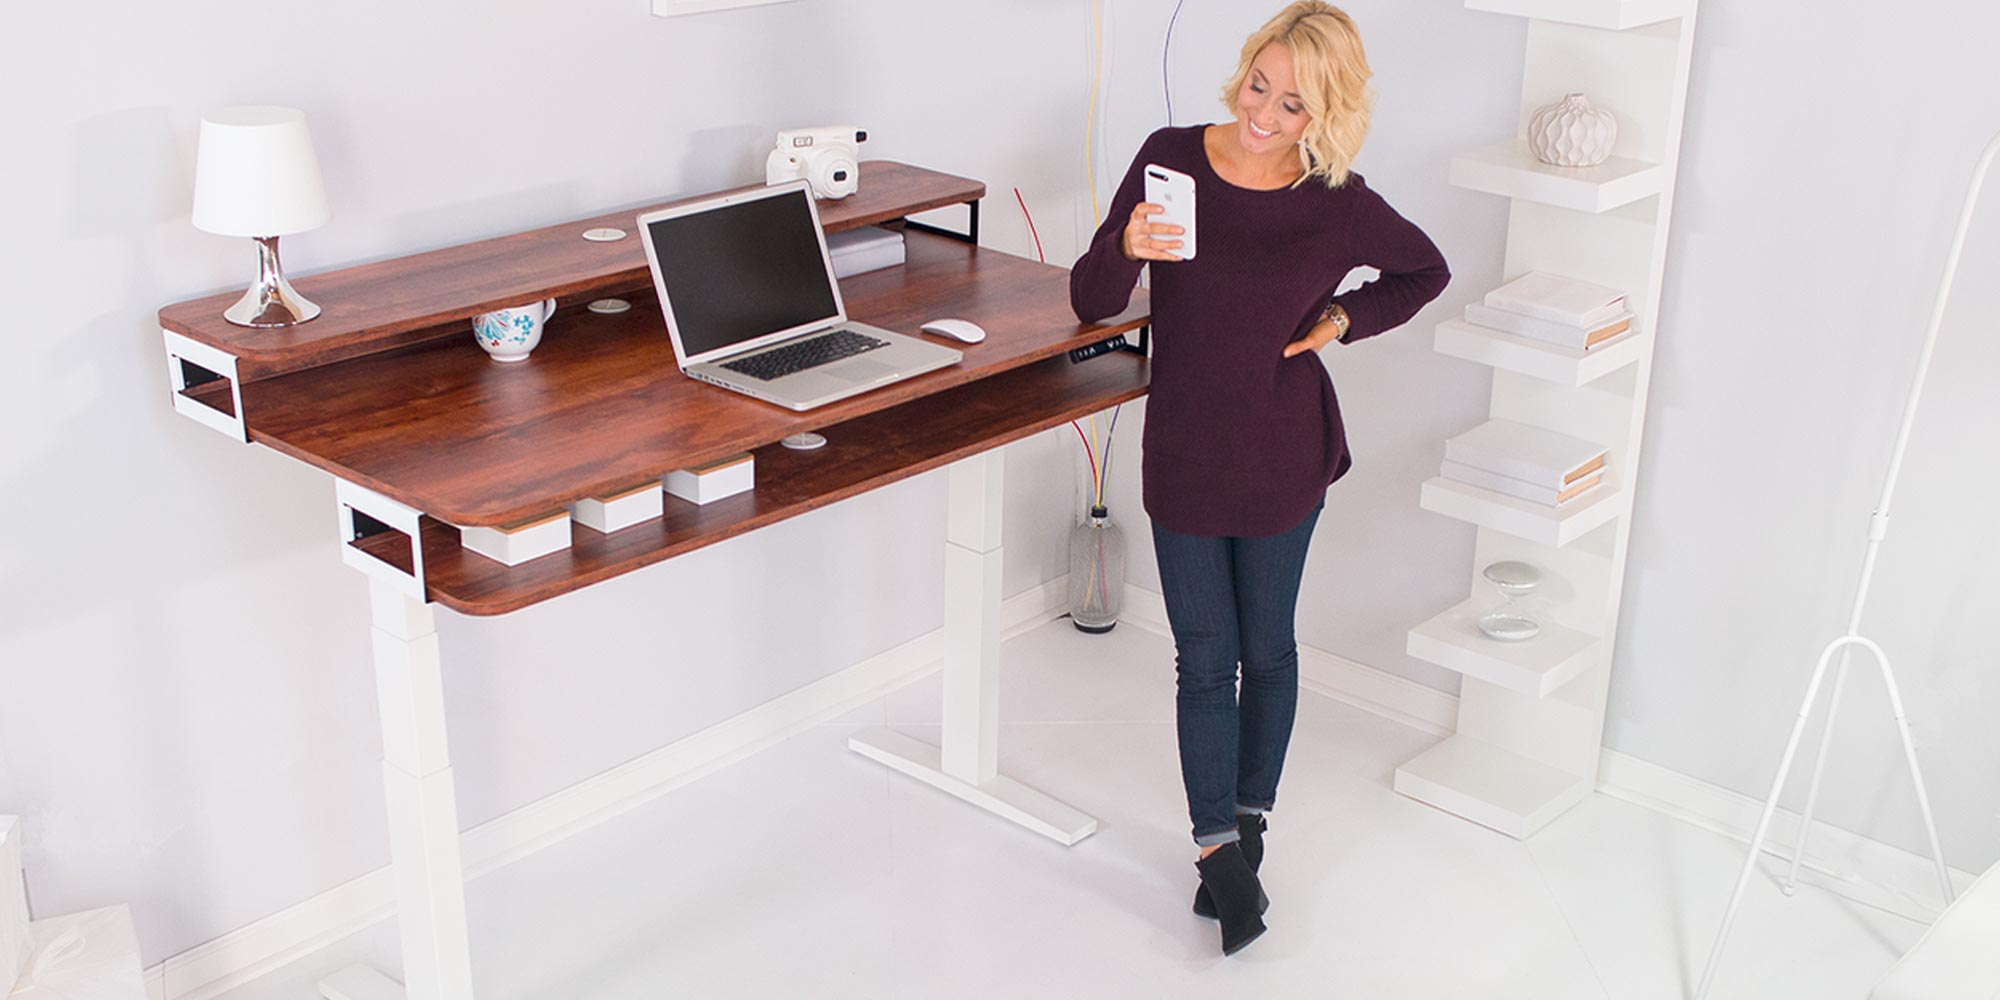 NookDesk reinvents the standing desk with upper & lower storage compartments